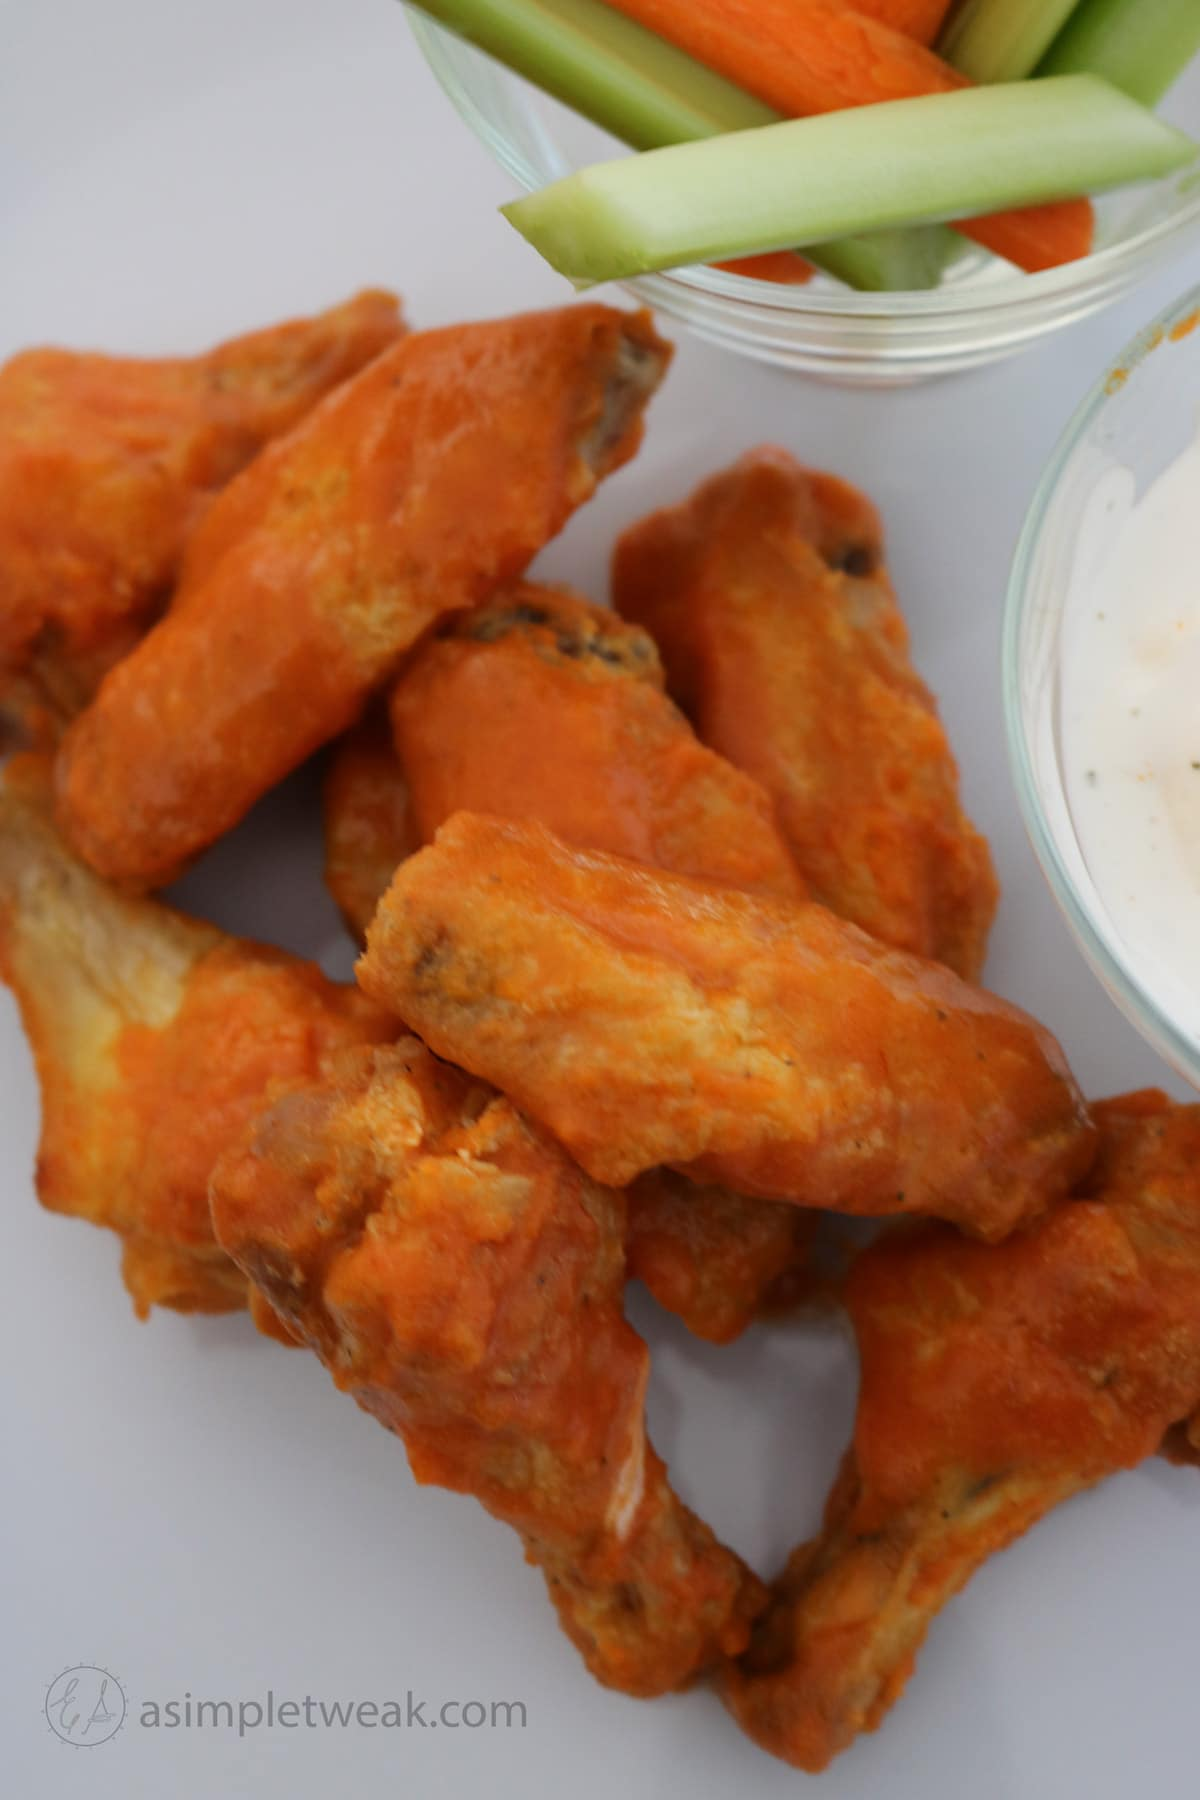 I like to serve the wings with carrots, celery sticks, and Blue cheese or ranch. Grab plenty of napkins and Enjoy!